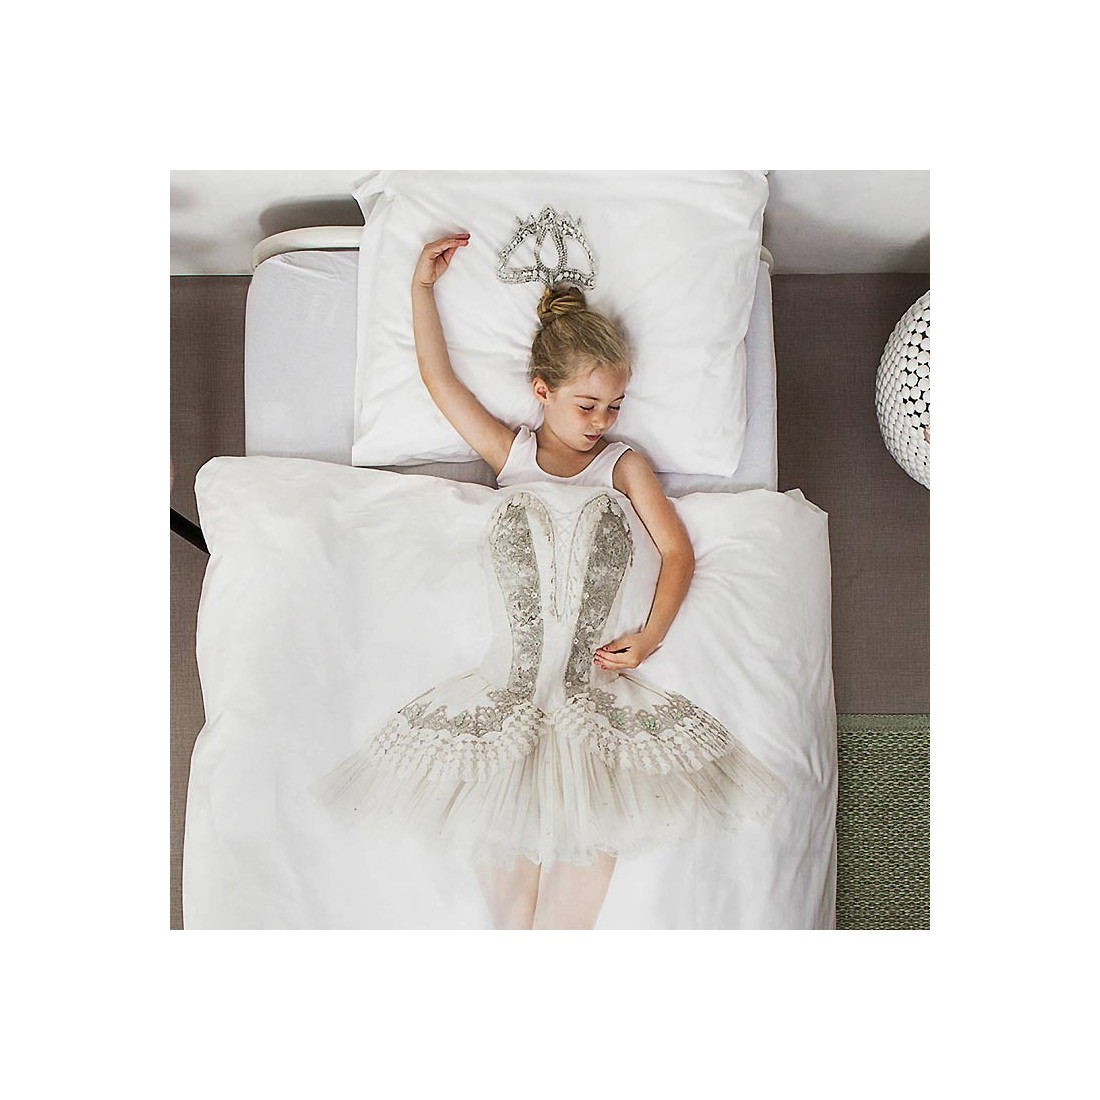 Product category id 37 product id 2427 besides 1062283185 further Westminster Bridge And Red Buses Pr317119 together with Product category id 29 product id 2017 in addition 5081 Housse De Couette Enfant Trompe L Oeil Ballerine Snurk. on art nouveau bedroom